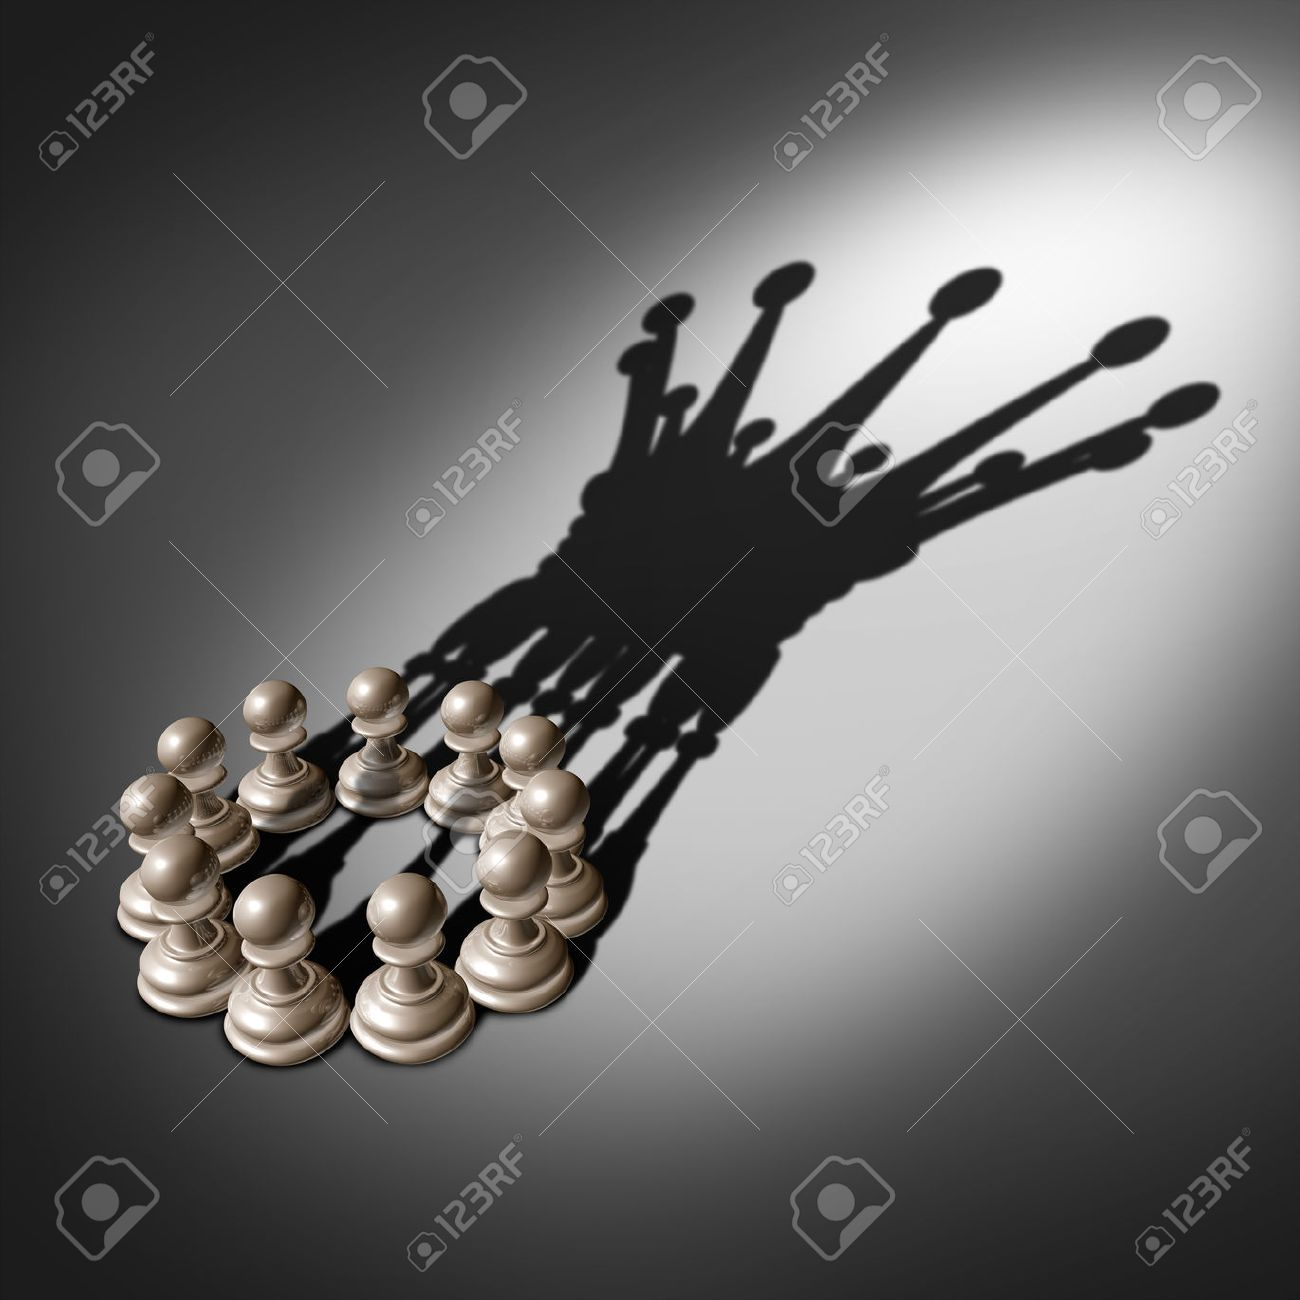 Leadership team and business group concept as an organized company of chess pawn pieces joining forces and working together united and as one in agreement to cast a shadow shaped as the crown of a king - 29806470